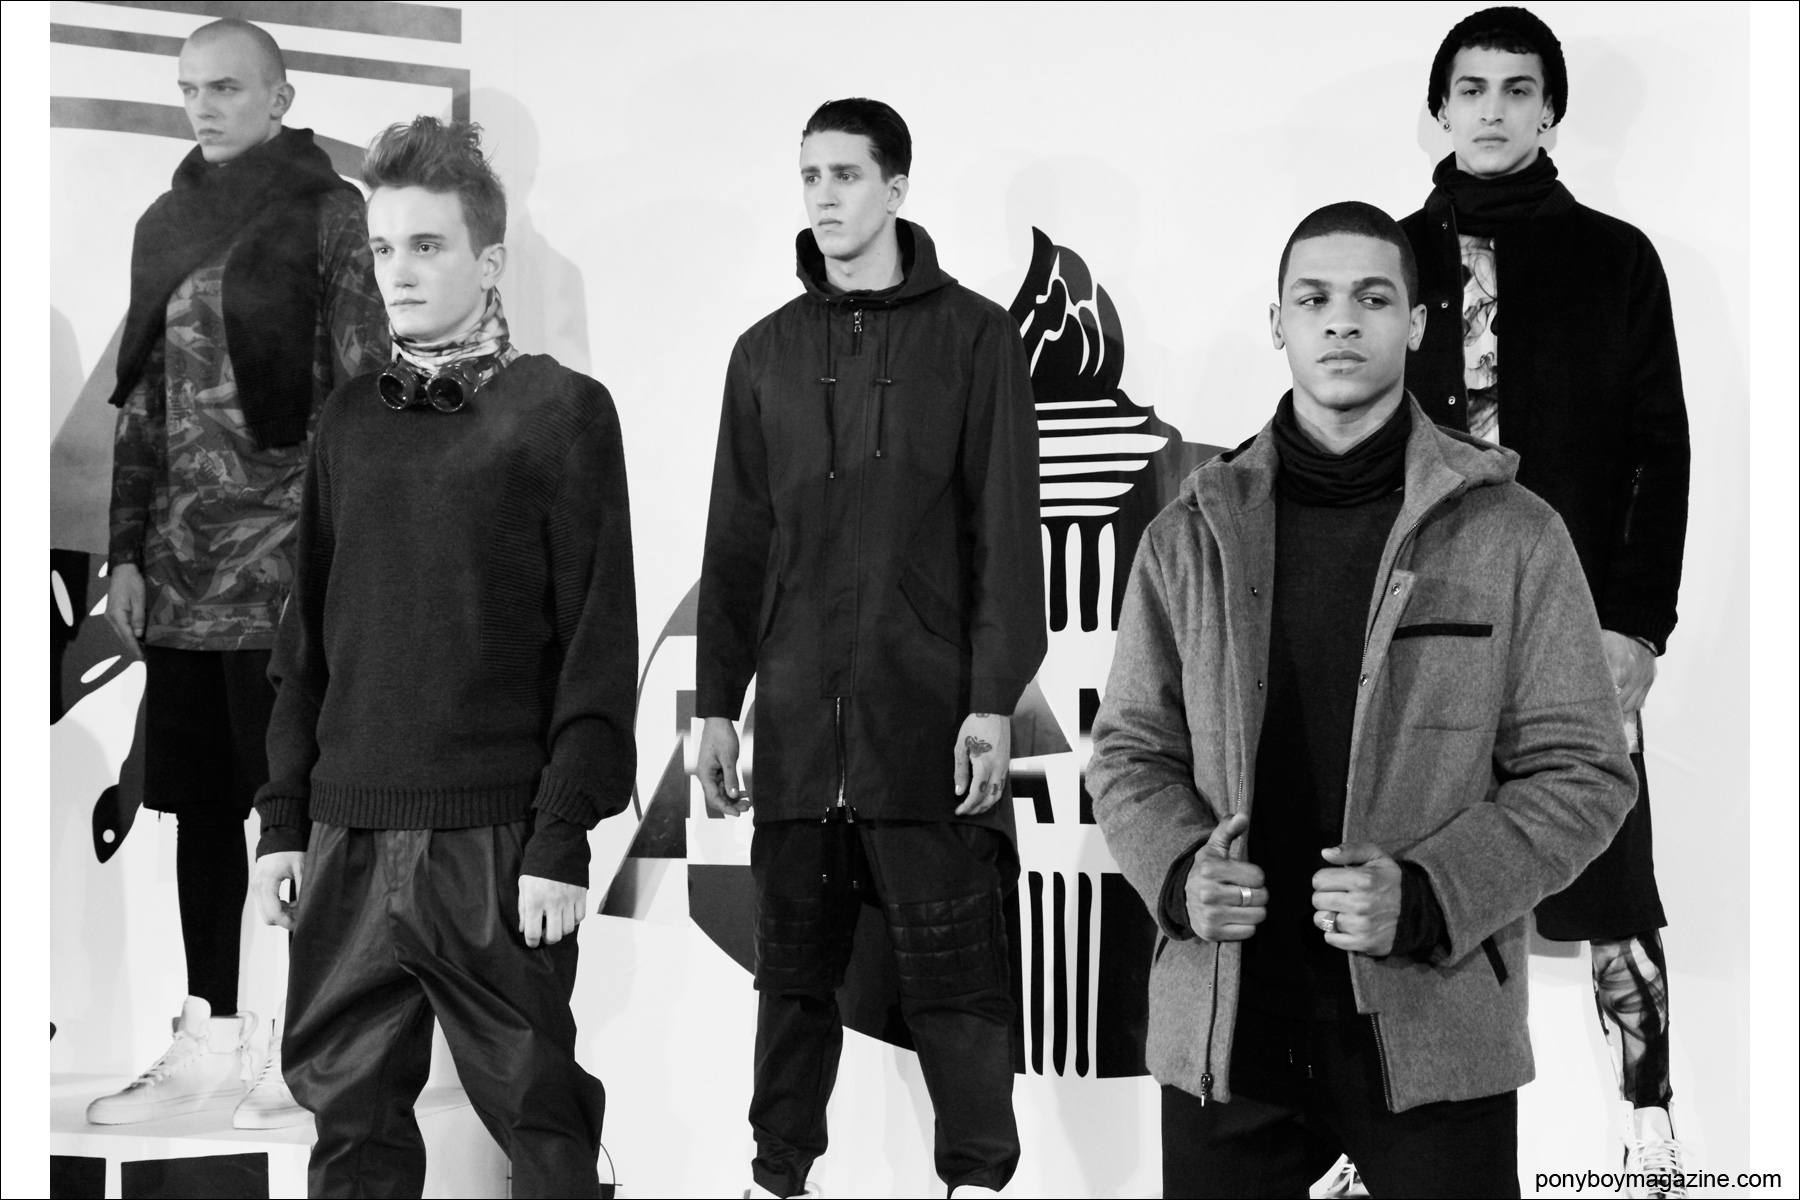 A group of male models at the presentation at Milk Studios for Rochambeau A/W 2014, photographed by Alexander Thompson in New York City for Ponyboy Magazine.